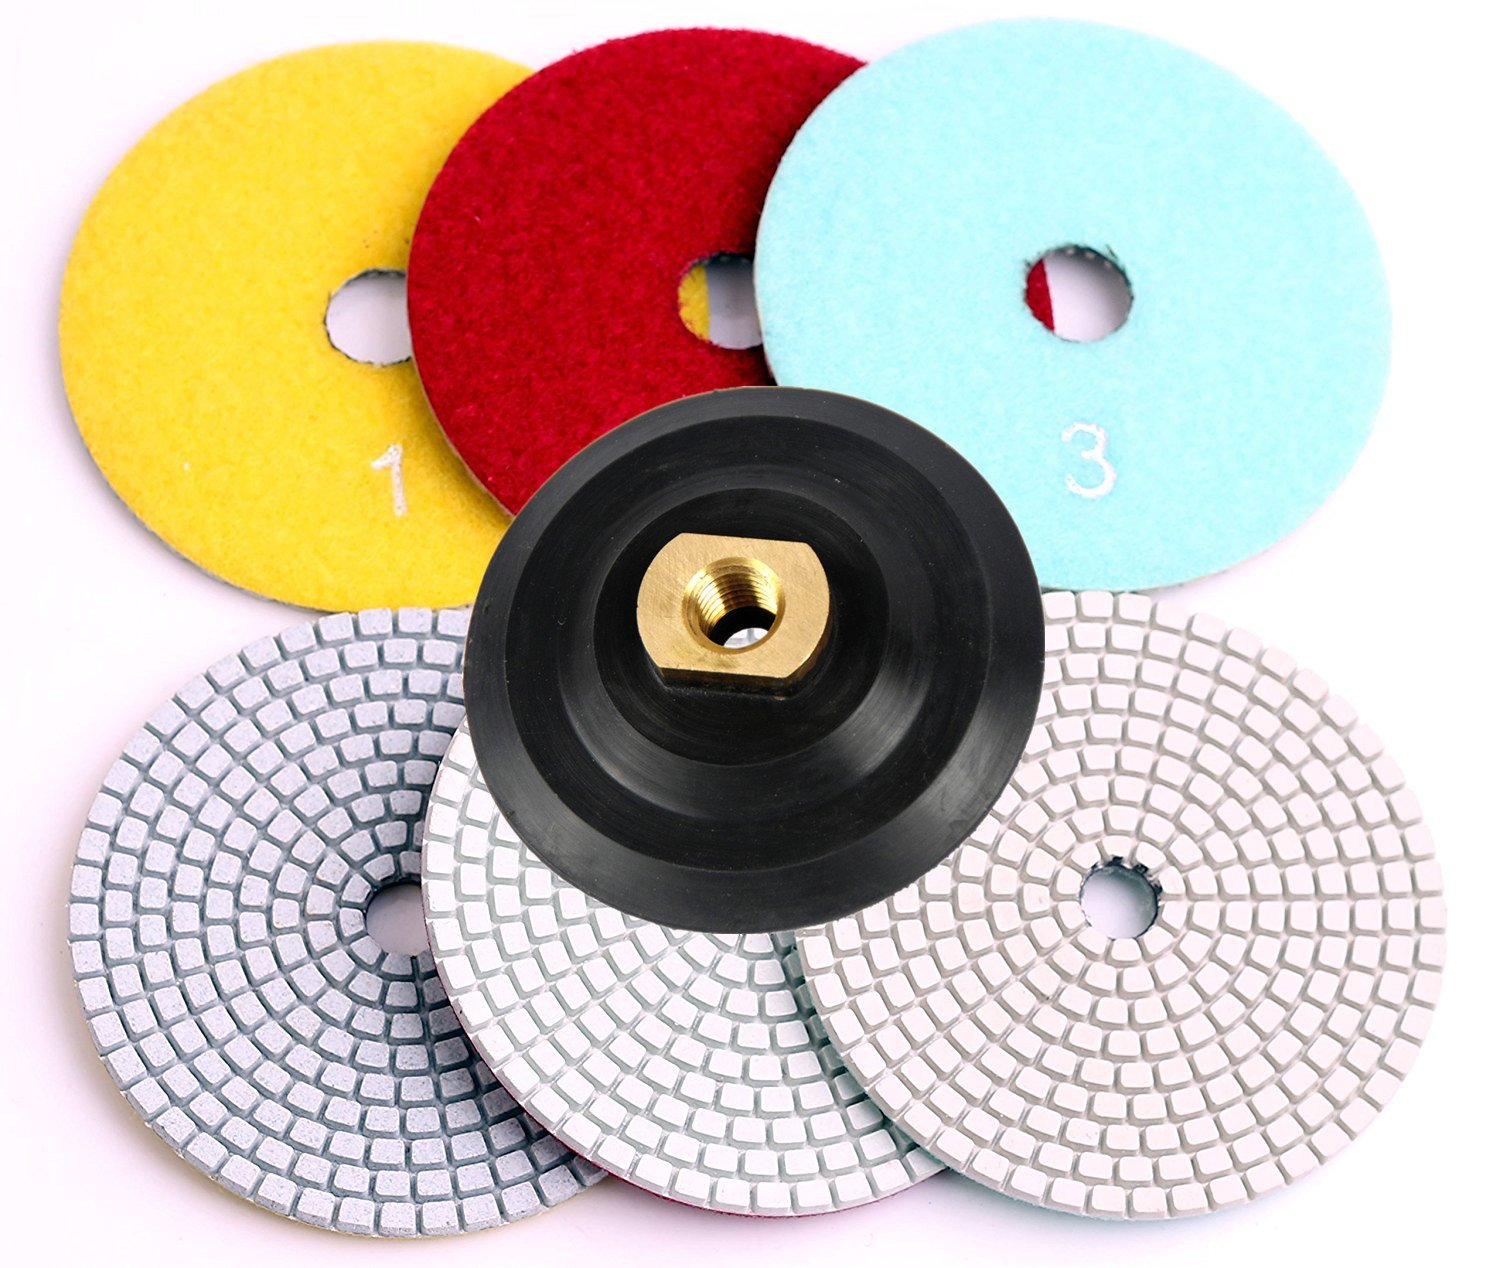 4 Inch Wet Dry Diamond Polishing Pads 3 Pcs Set with Rubber Backer for Granite,Stone,Marble 5/8-11 thread (3 Pads,1 Backer)